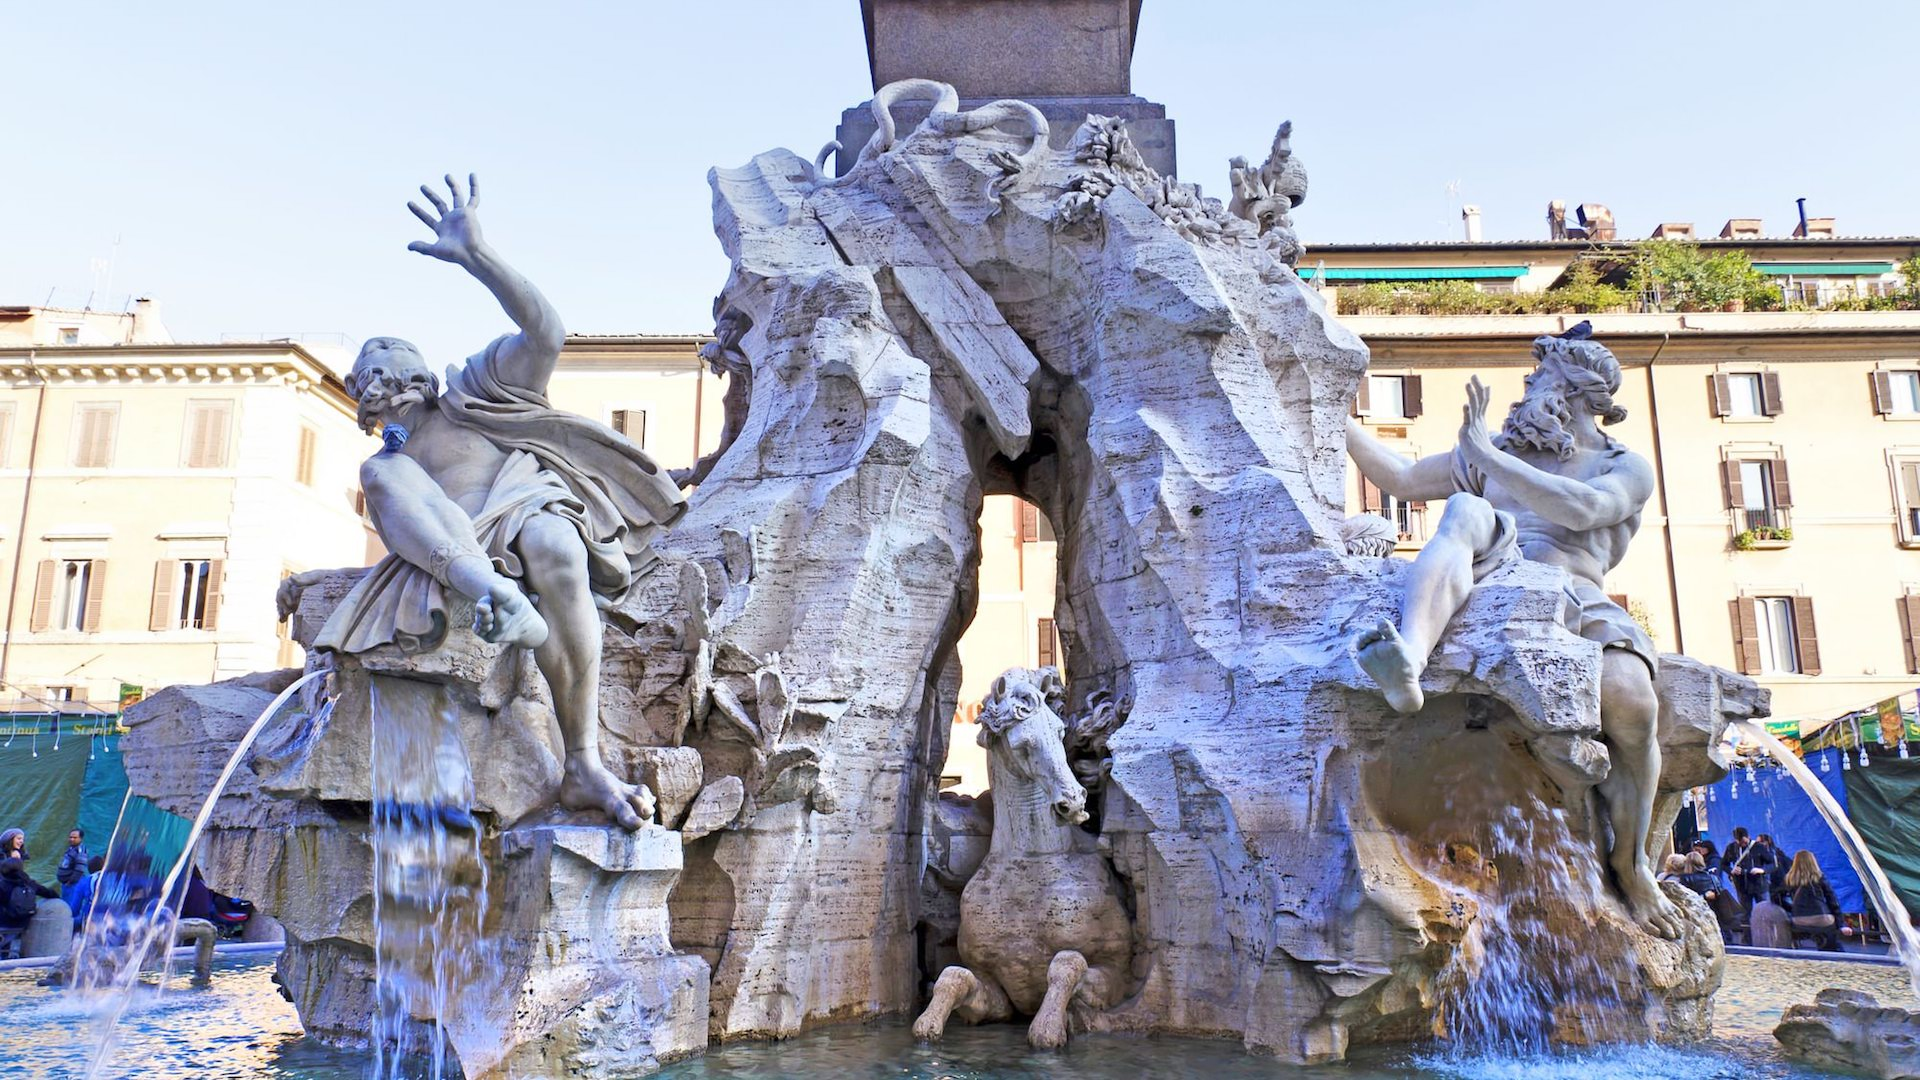 Rome, Italy. Fountain of the Four Rivers (Fontana dei Quattro Fiumi) with an Egyptian obelisk. Piazza Navona is one of the most famous squares of Rome